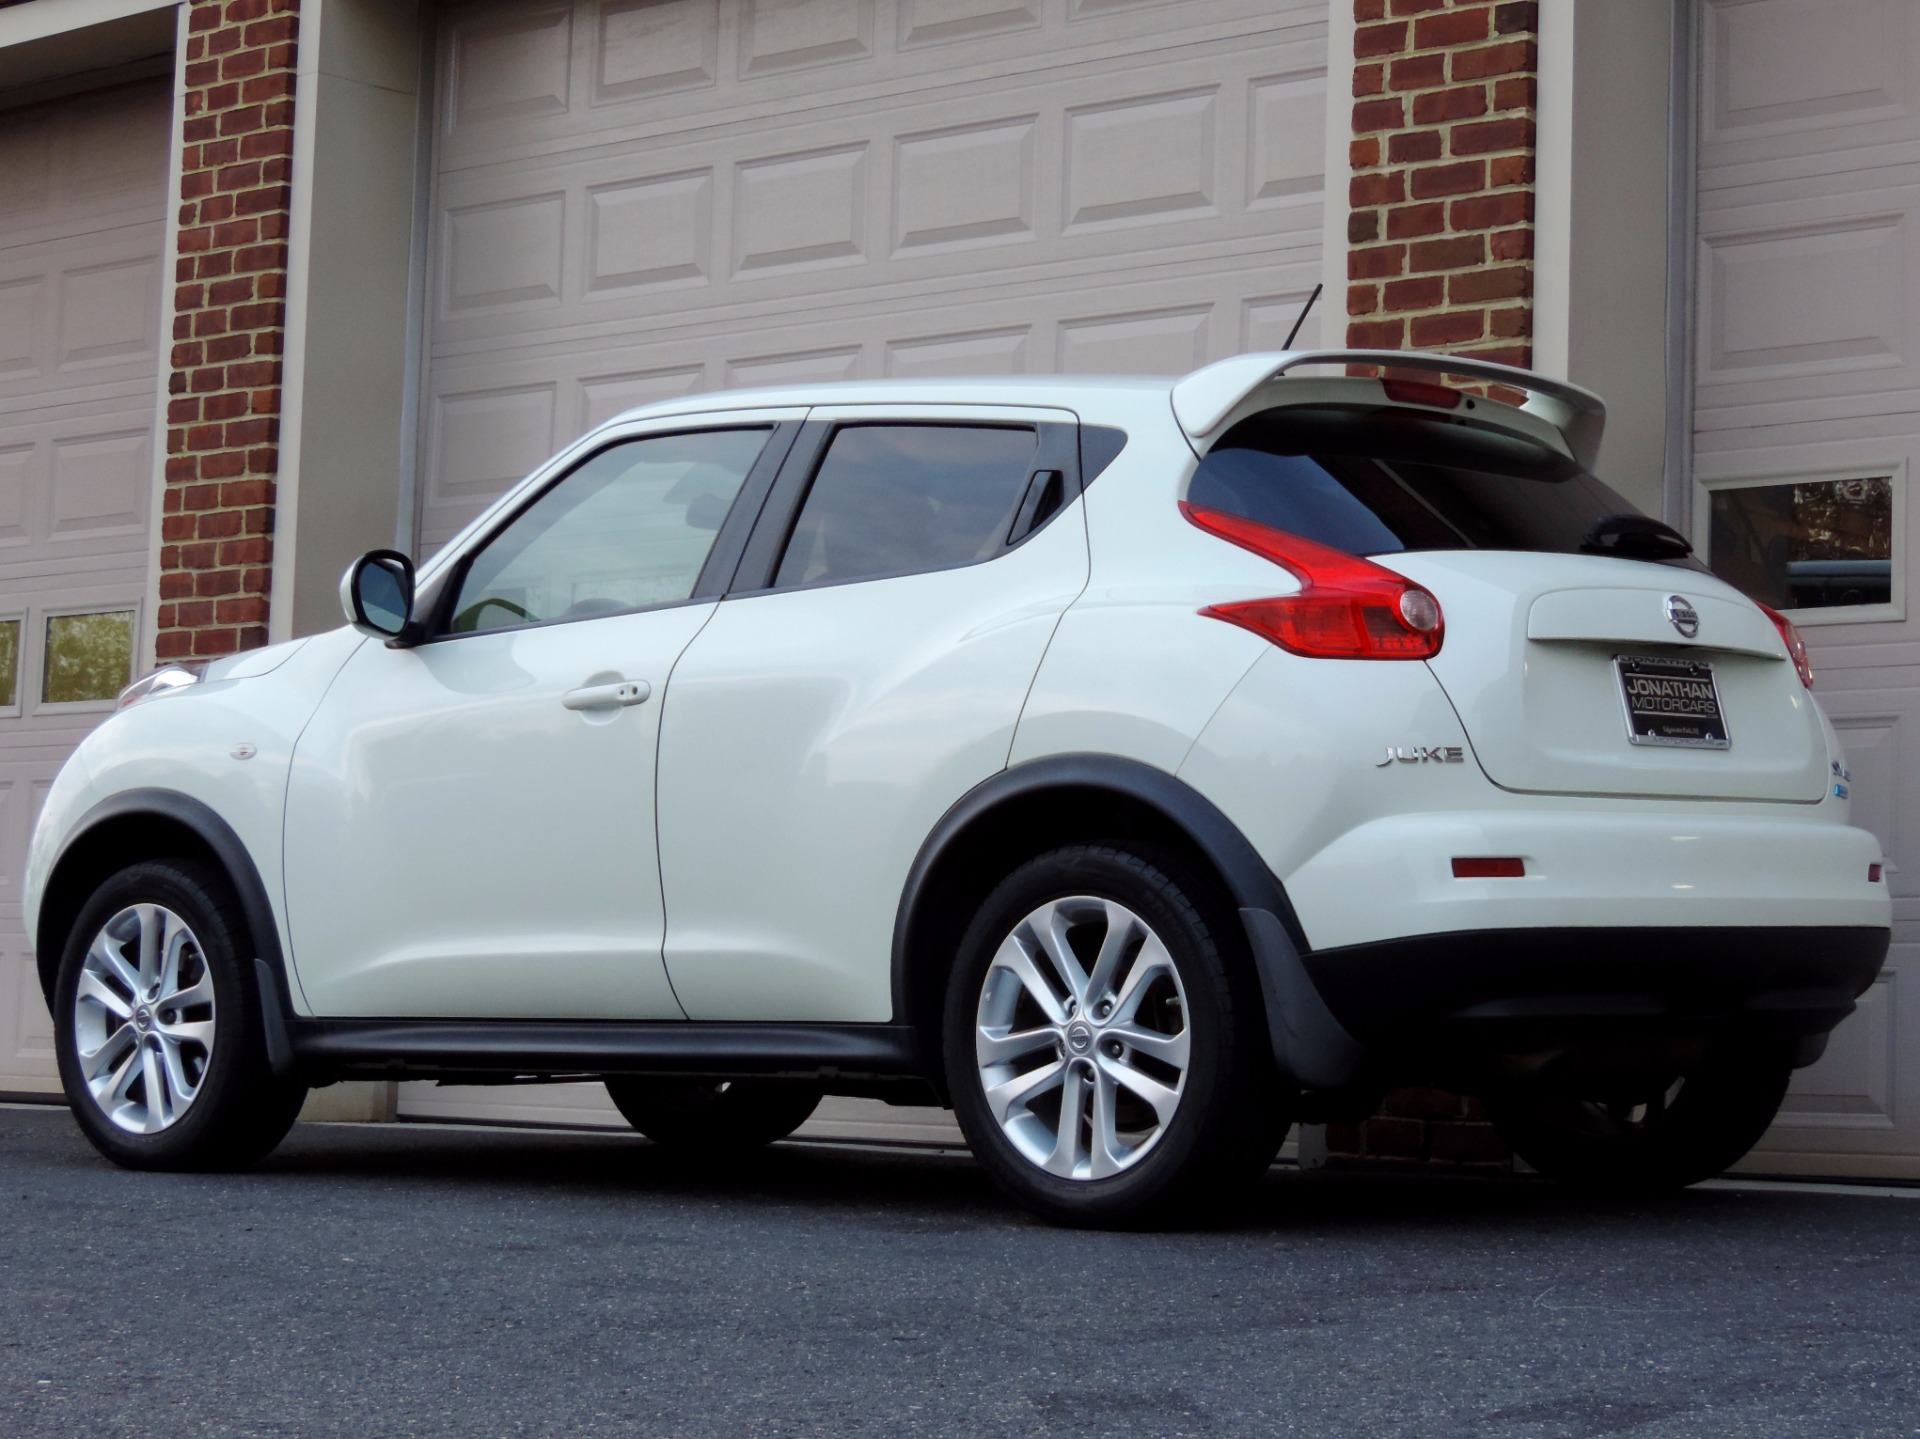 Nissan Dealers In Nj >> 2012 Nissan JUKE SV Stock # 124921 for sale near Edgewater ...